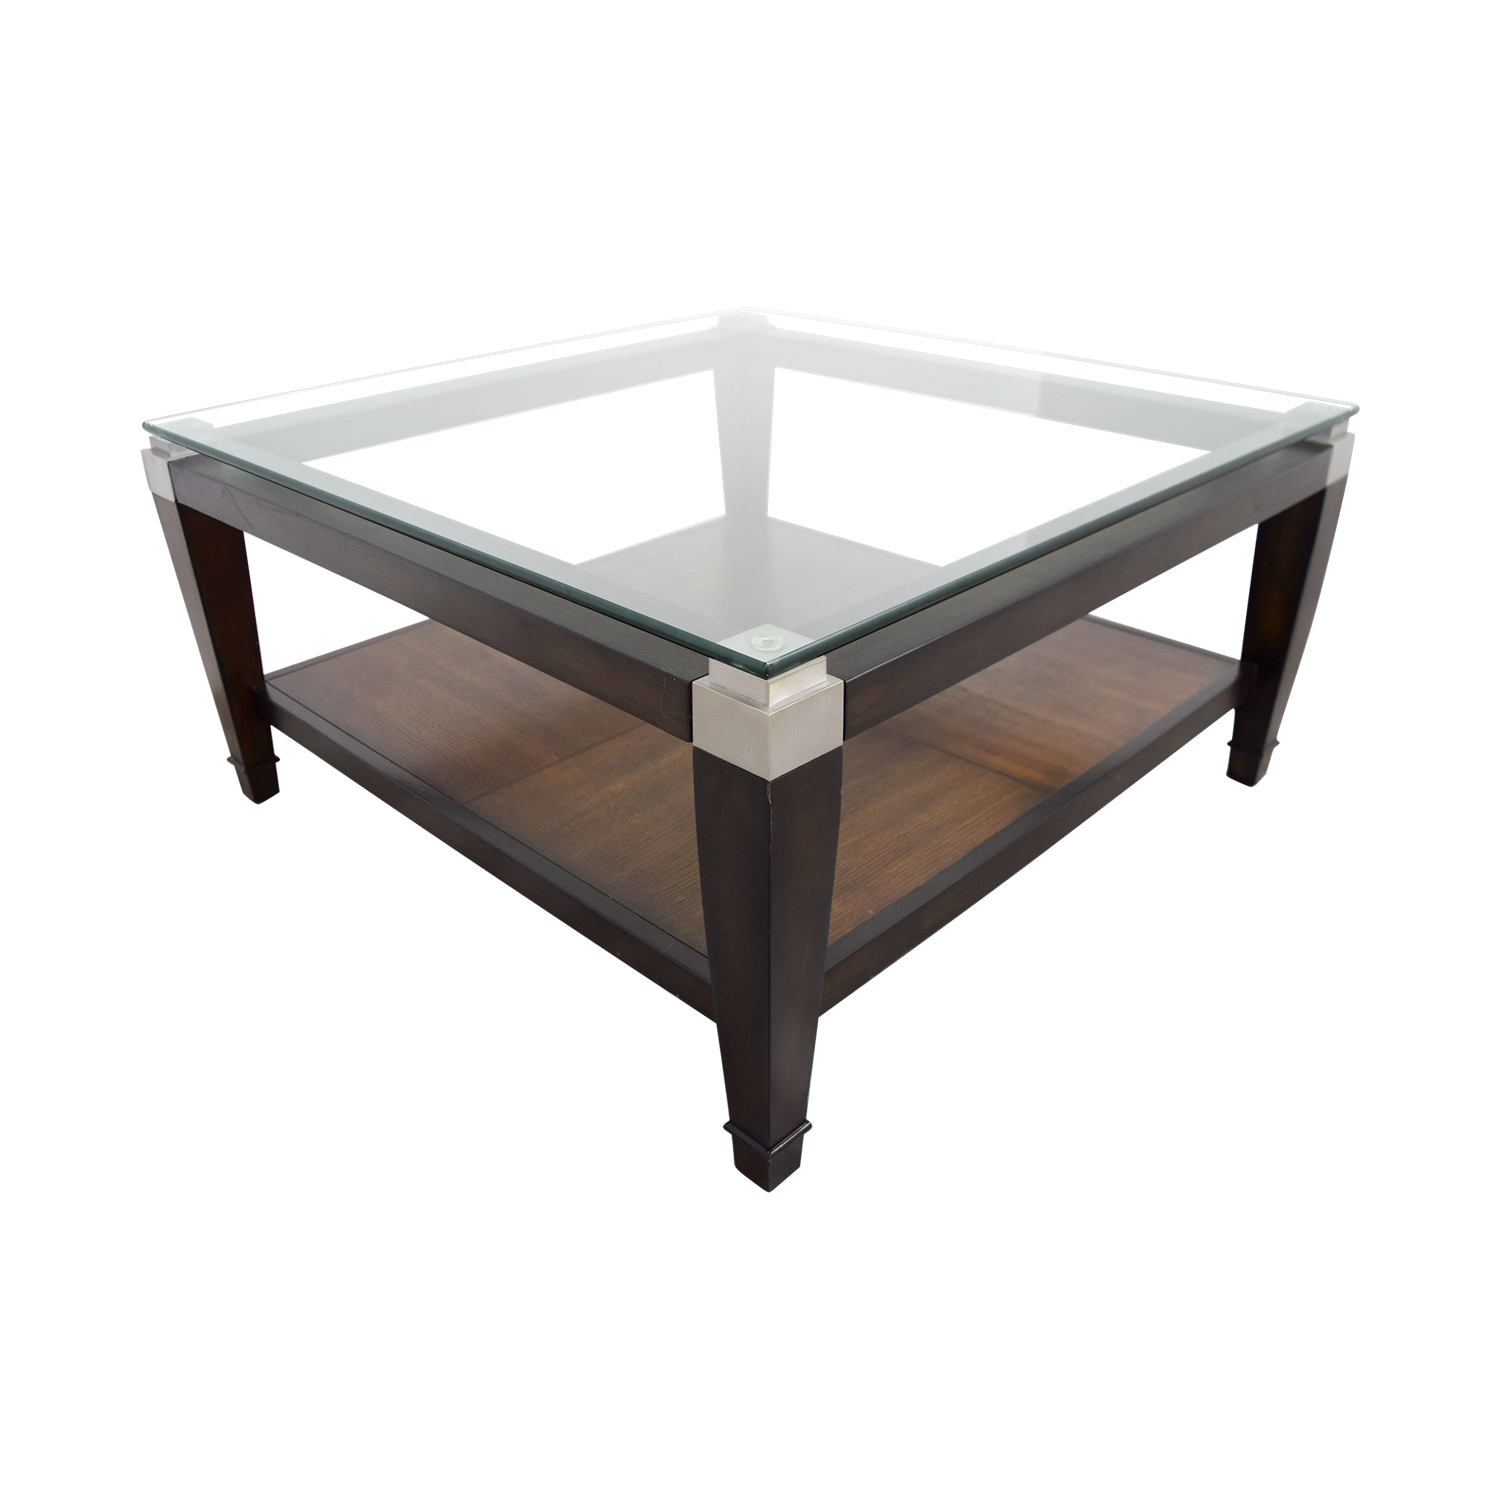 buy Raymour and Flanigan Raymour & Flanigan Wood and Glass Coffee Table online